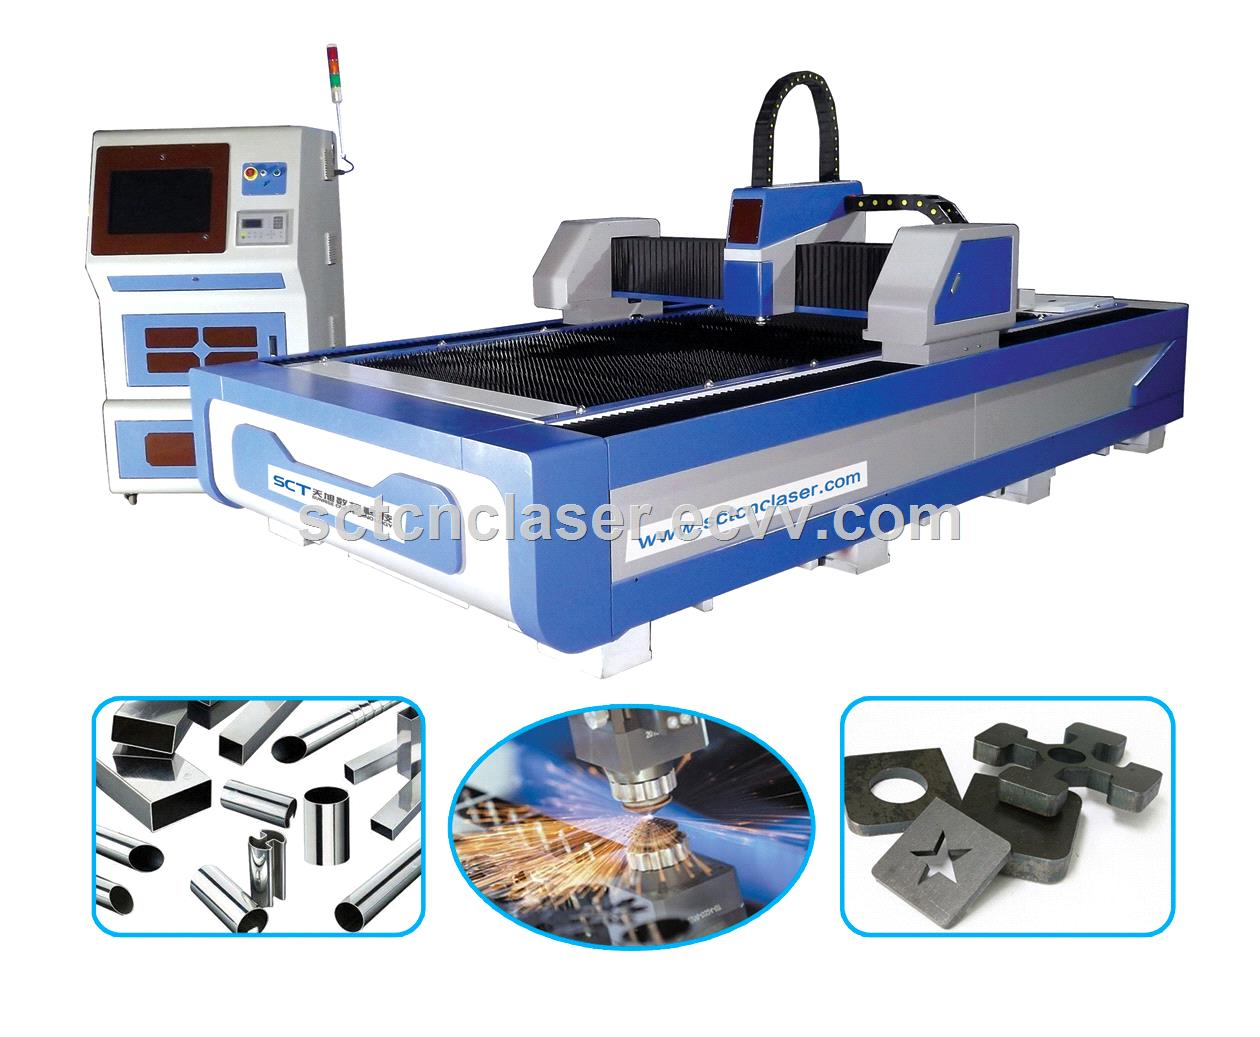 High Speed Metal Plates Kitchen Manufacturing SCT Fiber Laser Cutting Machine F3015